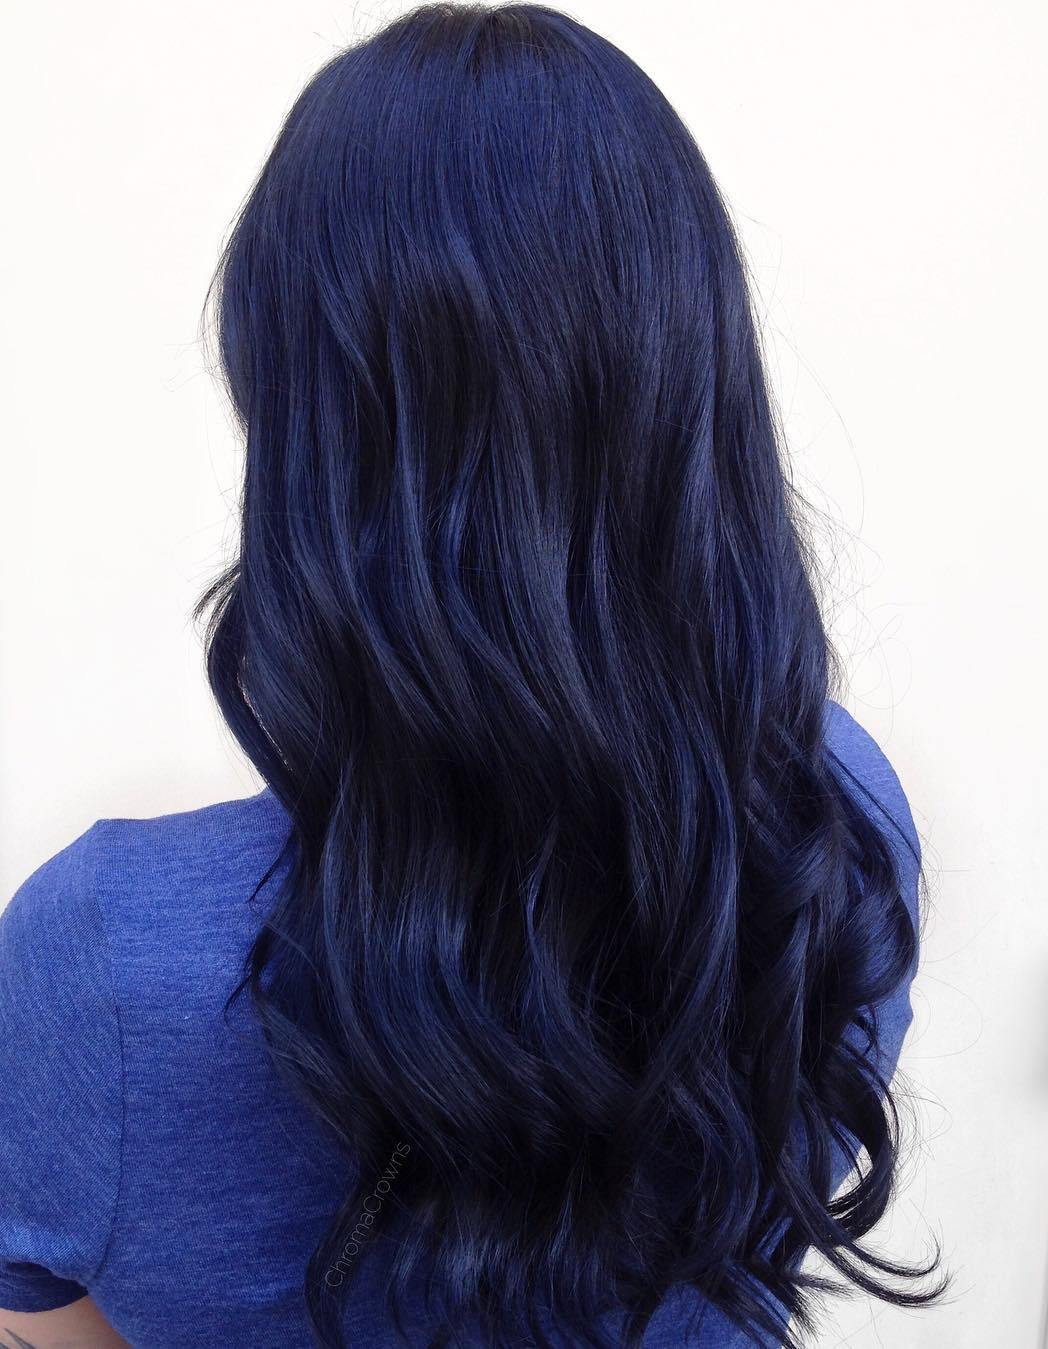 Jet hair black with blue tint